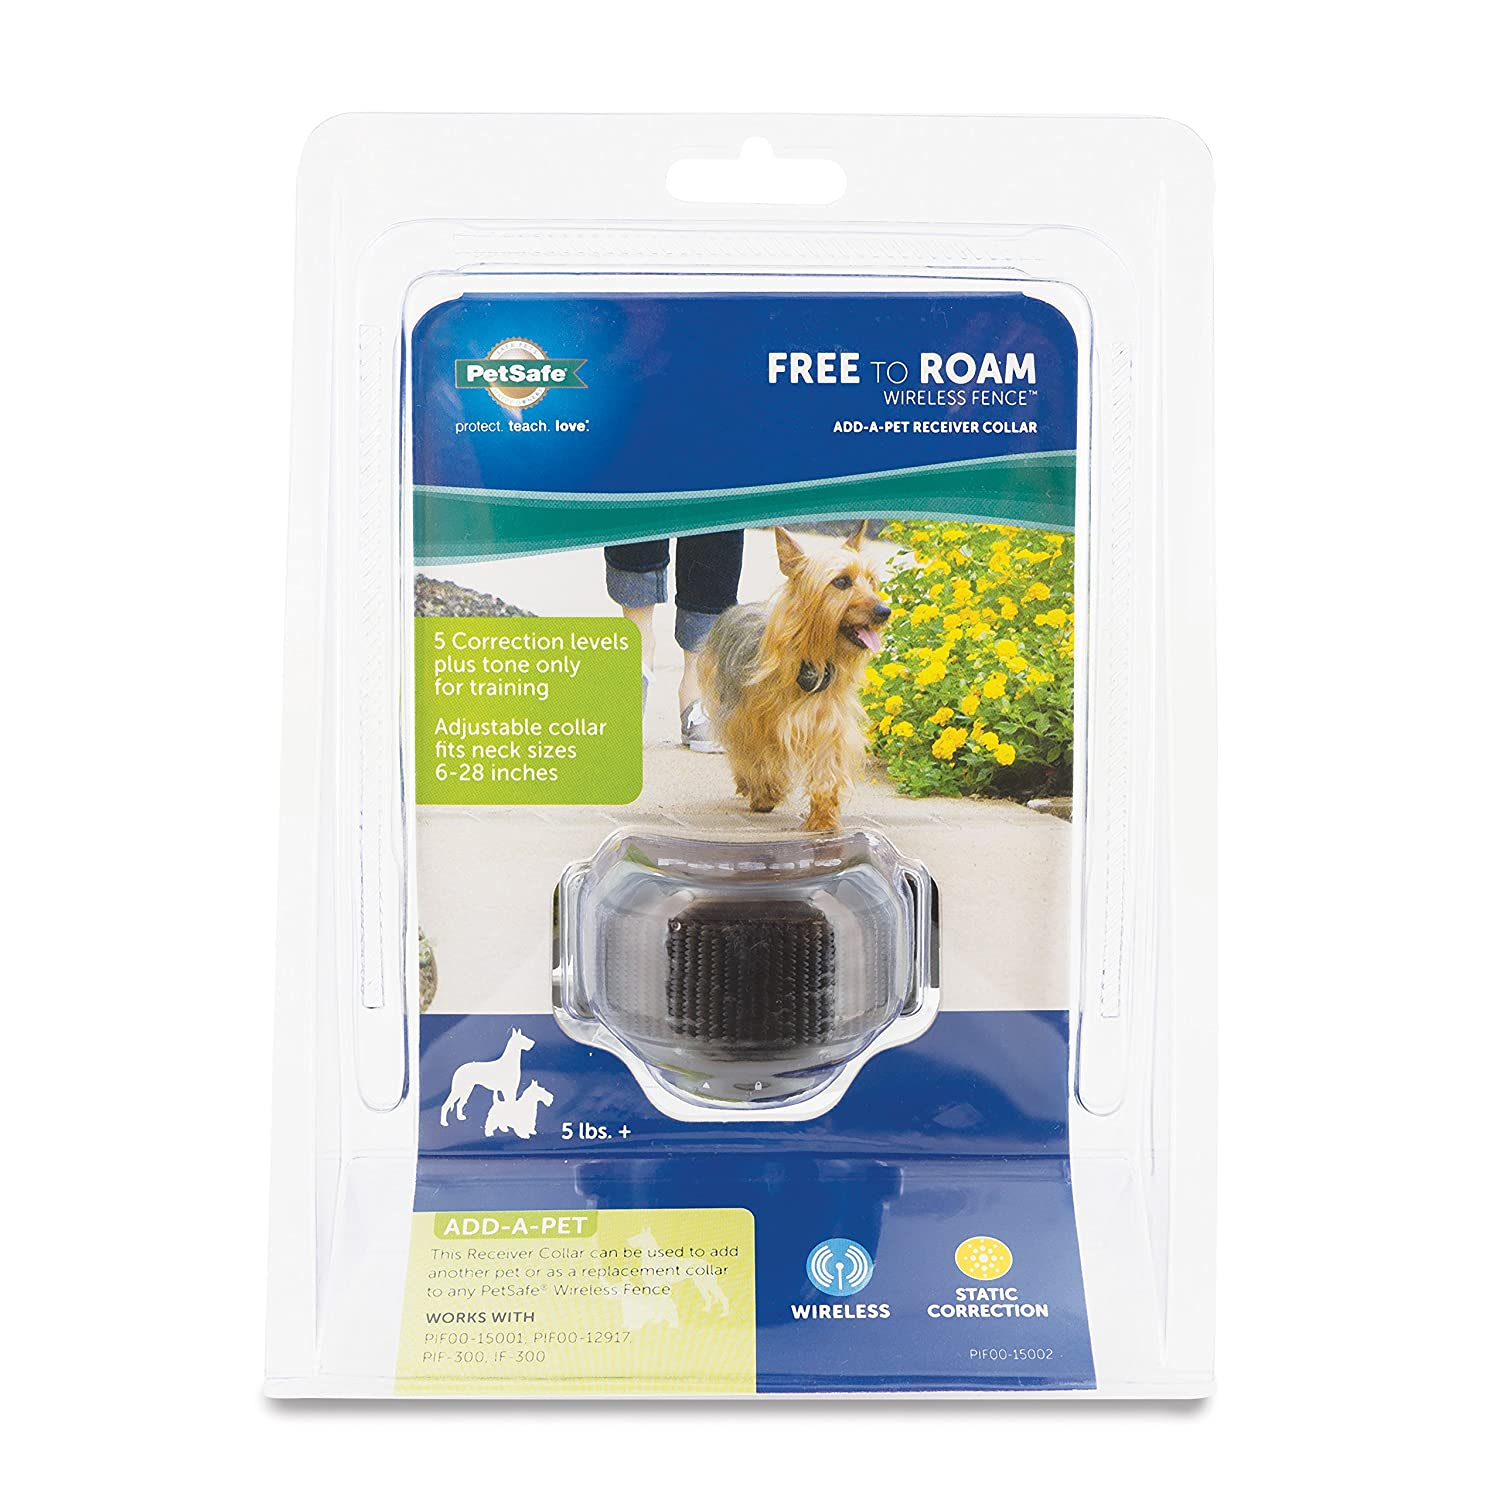 petsafe free to roam fence receiver collar for dogs